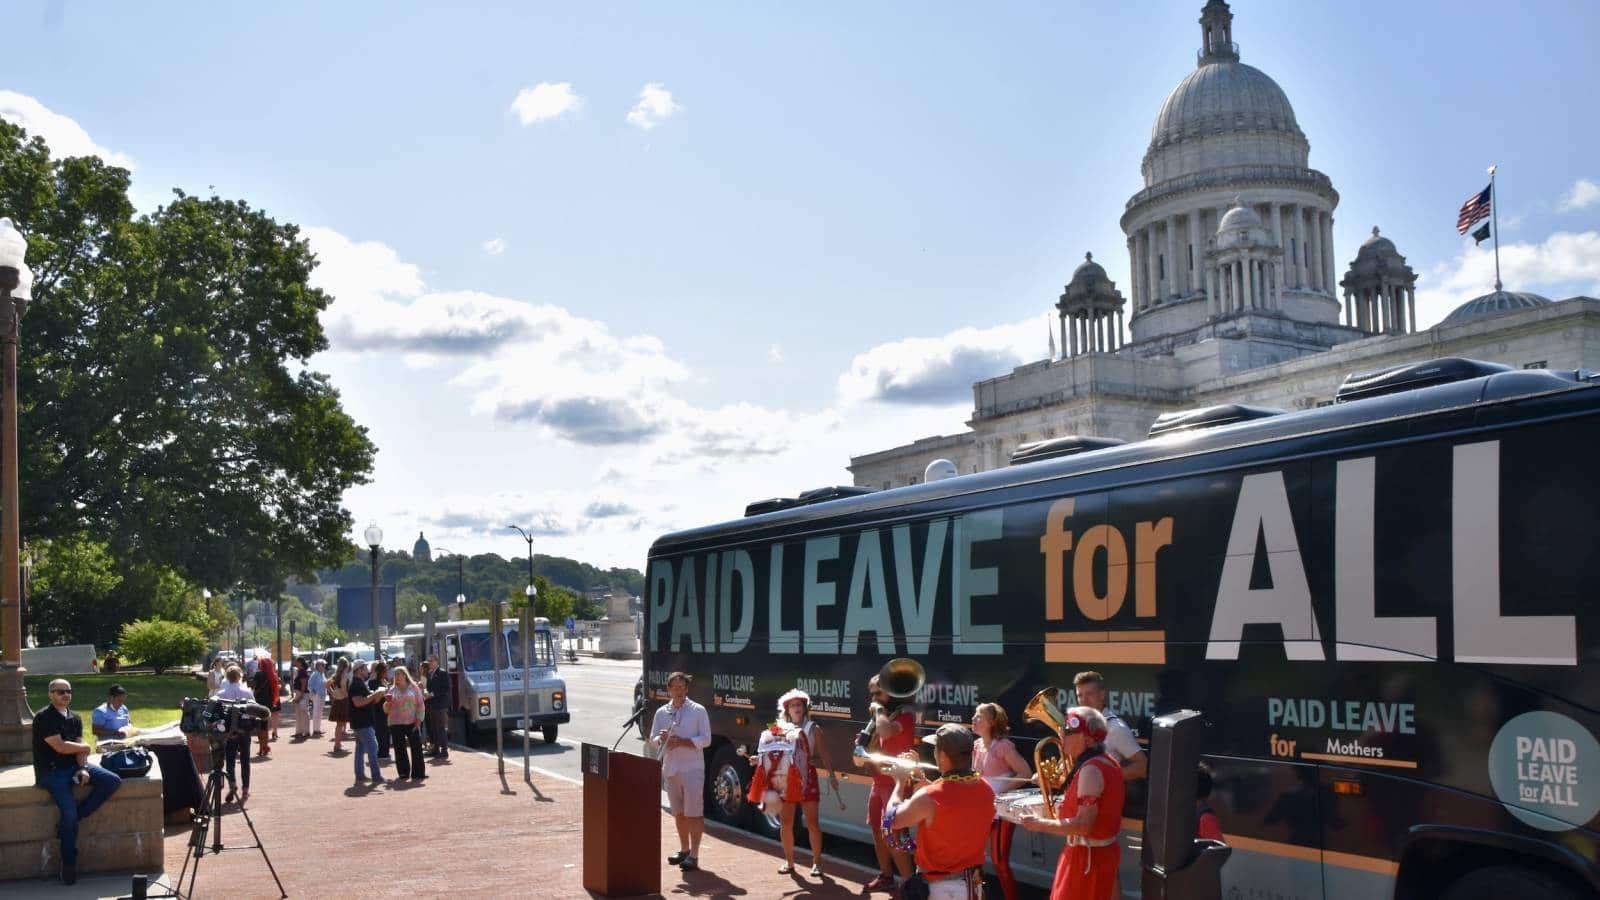 Paid Leave for All National Bus Tour kicks off from Rhode Island